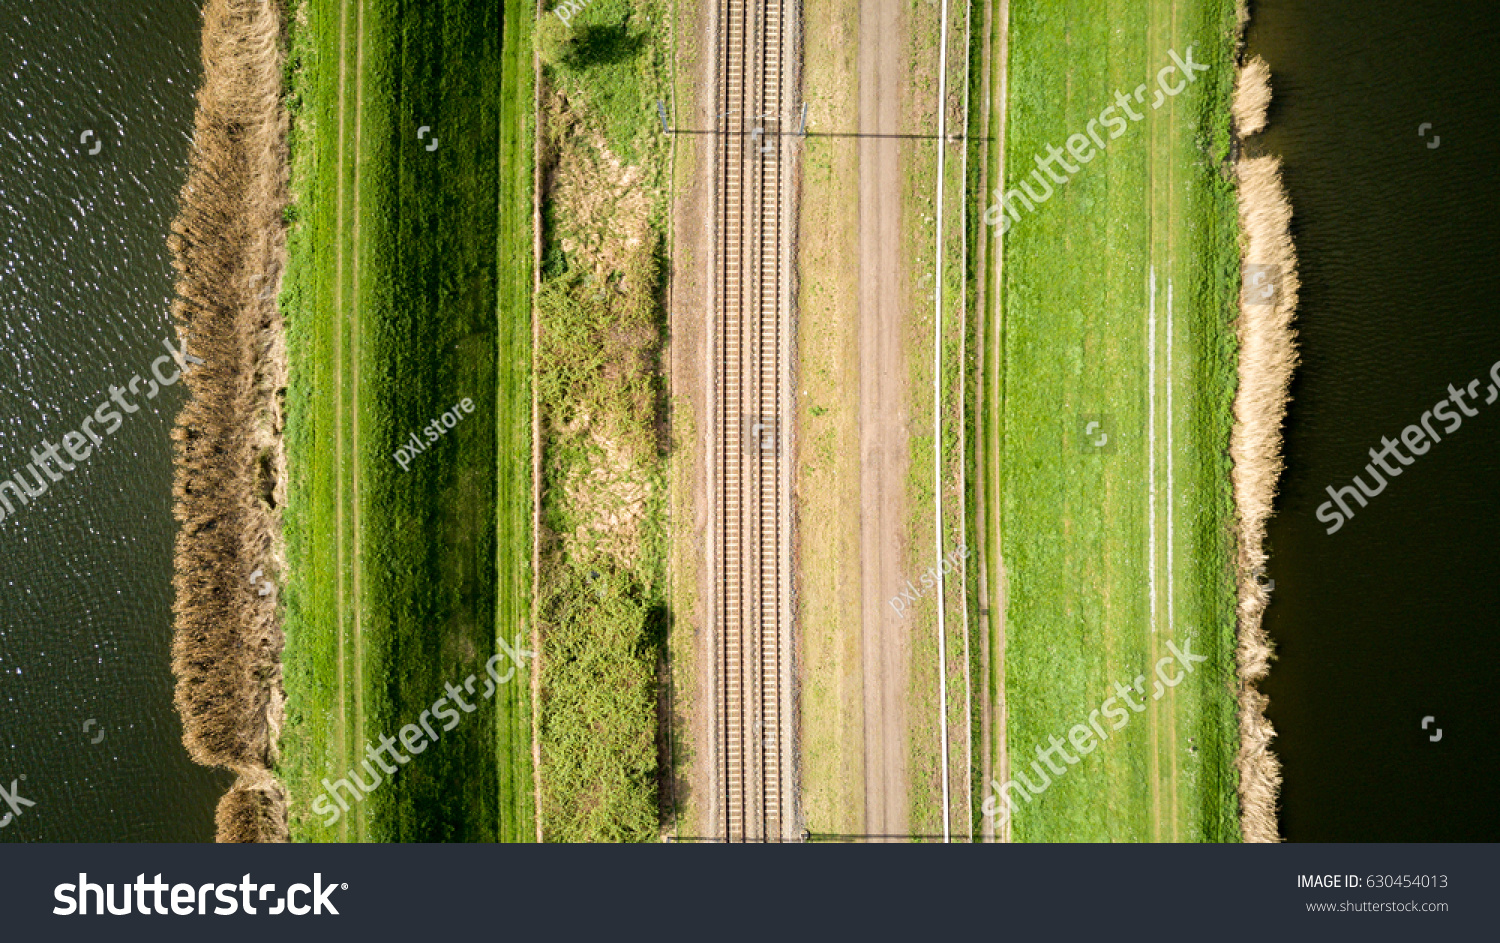 Vertical view of train tracks. Aerial drone photo of a train track bordered by water and pathways creating abstract mirrored lined textures.